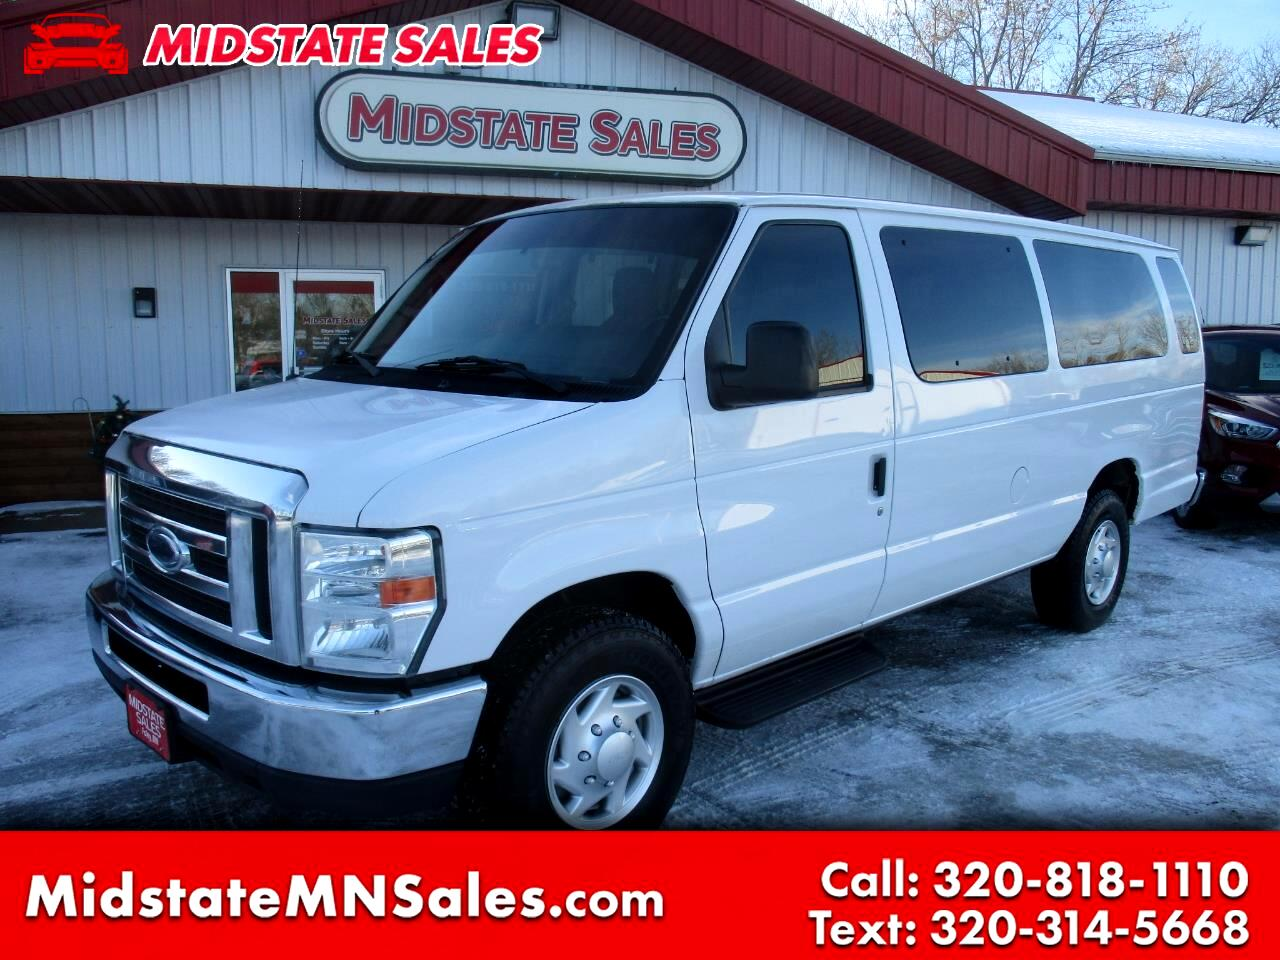 2012 Ford Econoline Wagon E-350 Super Duty Ext XLT